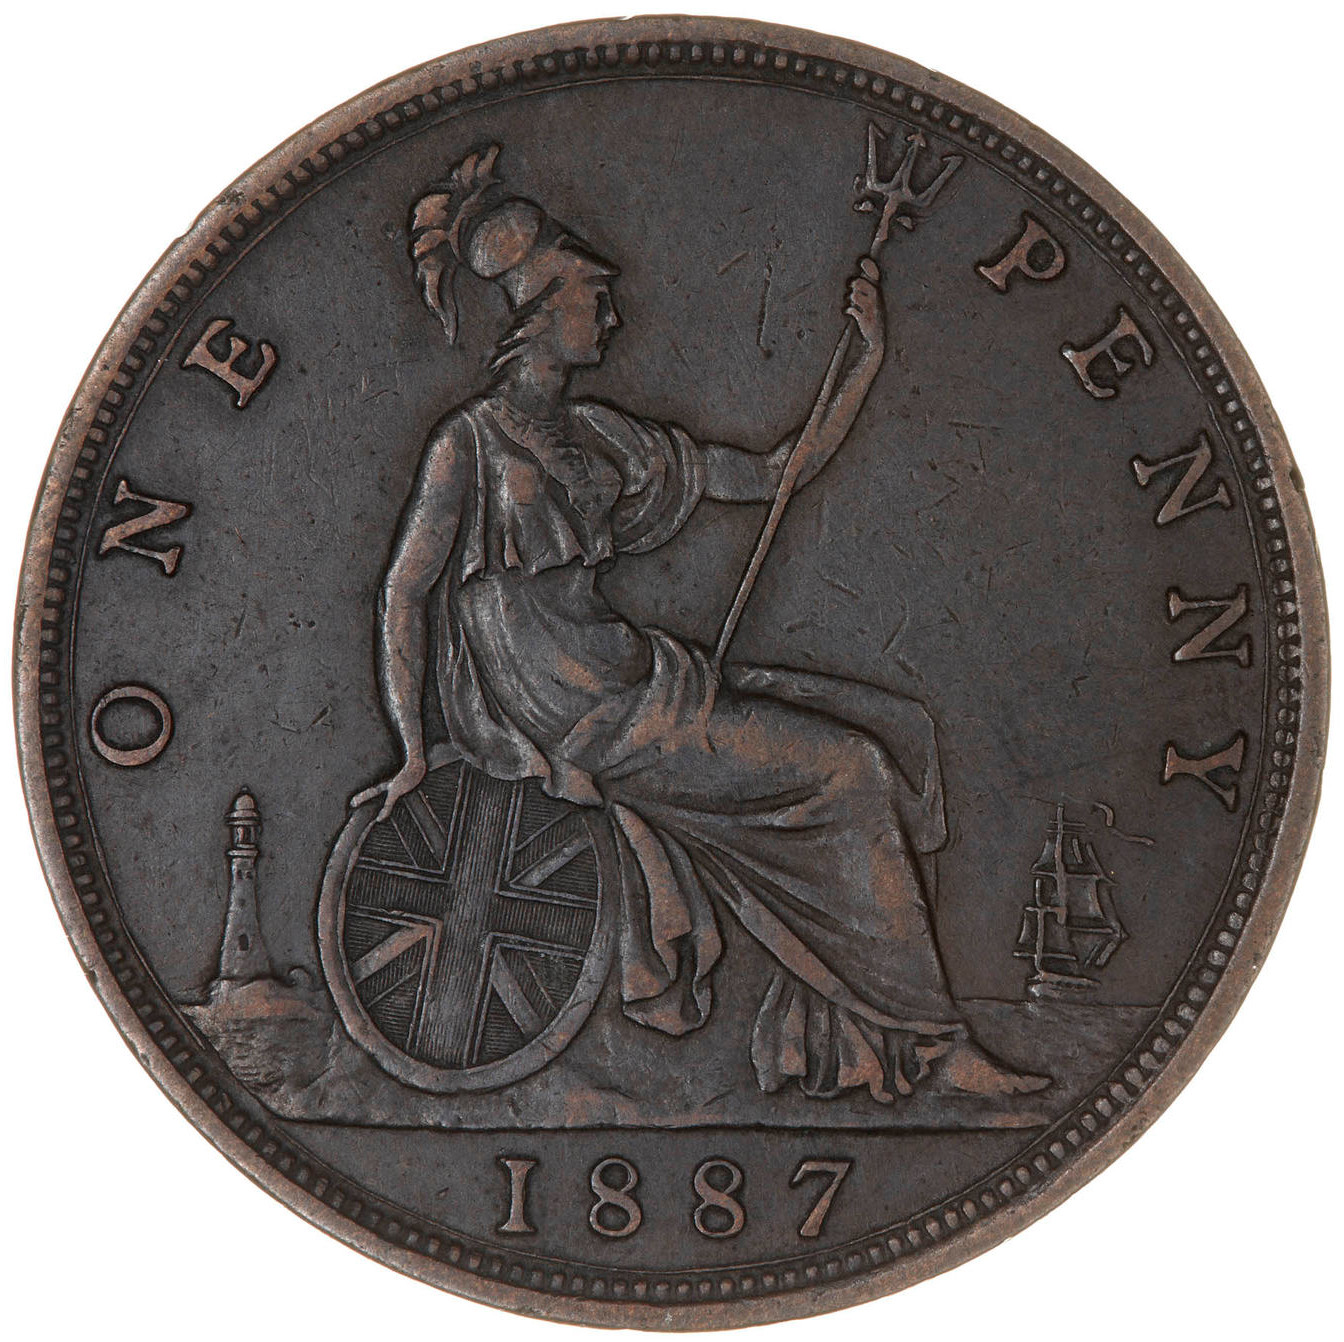 Penny 1887: Photo Coin - Penny, Queen Victoria, Great Britain, 1887